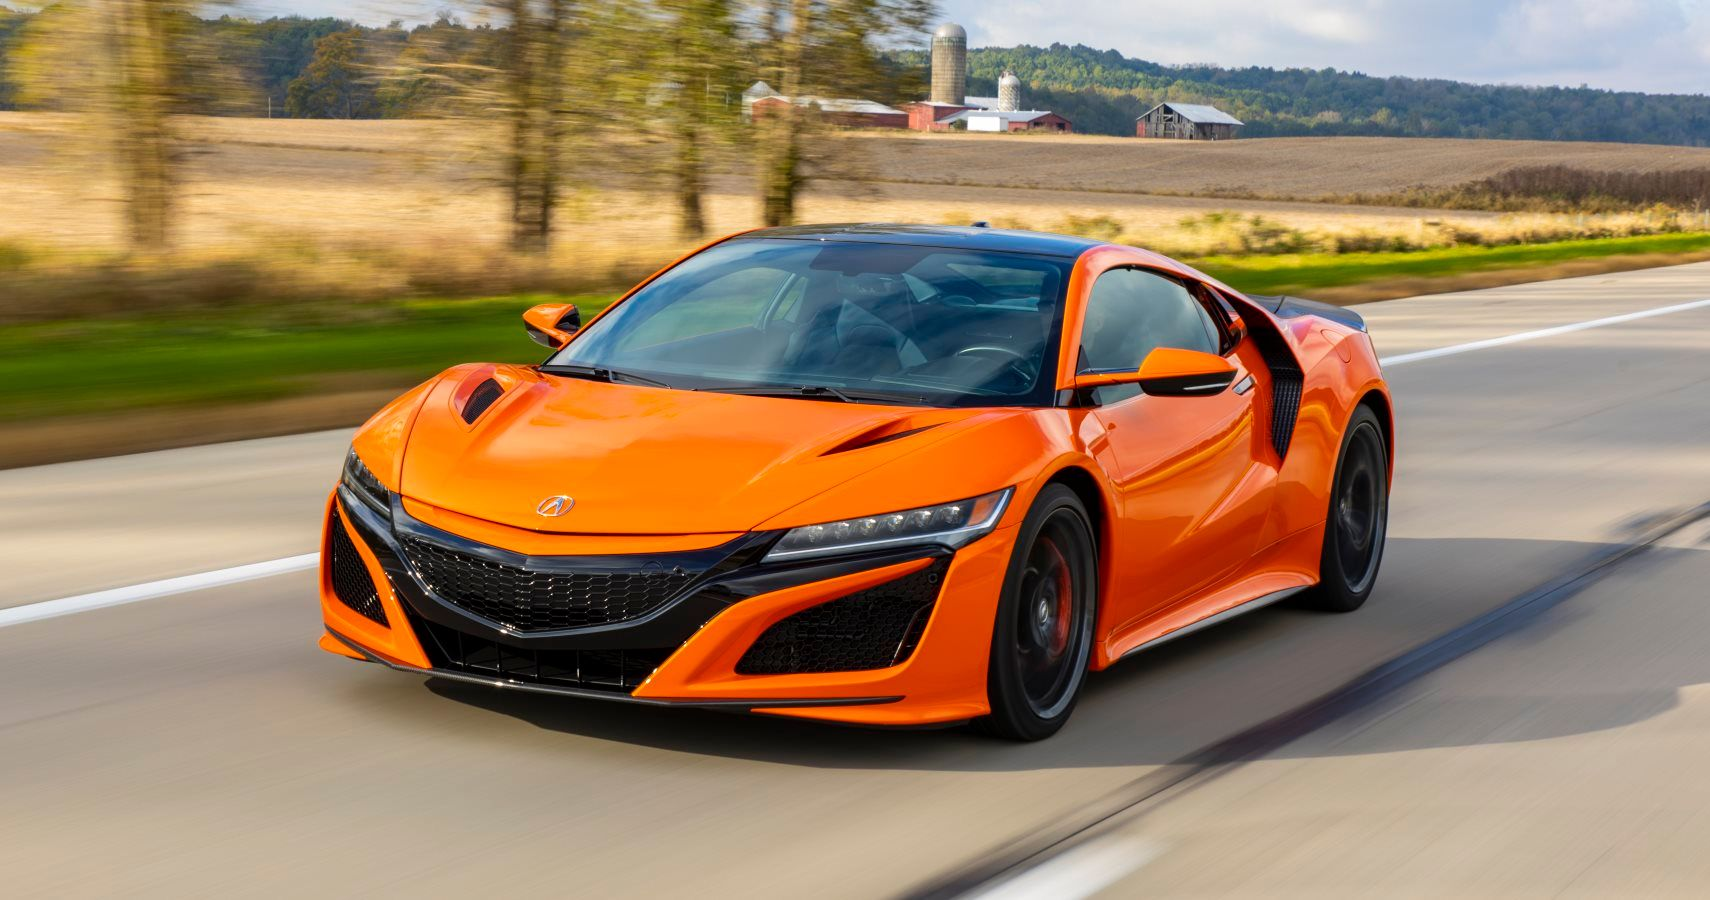 Review Acura Nsx Supercar Performance For Less Hotcars